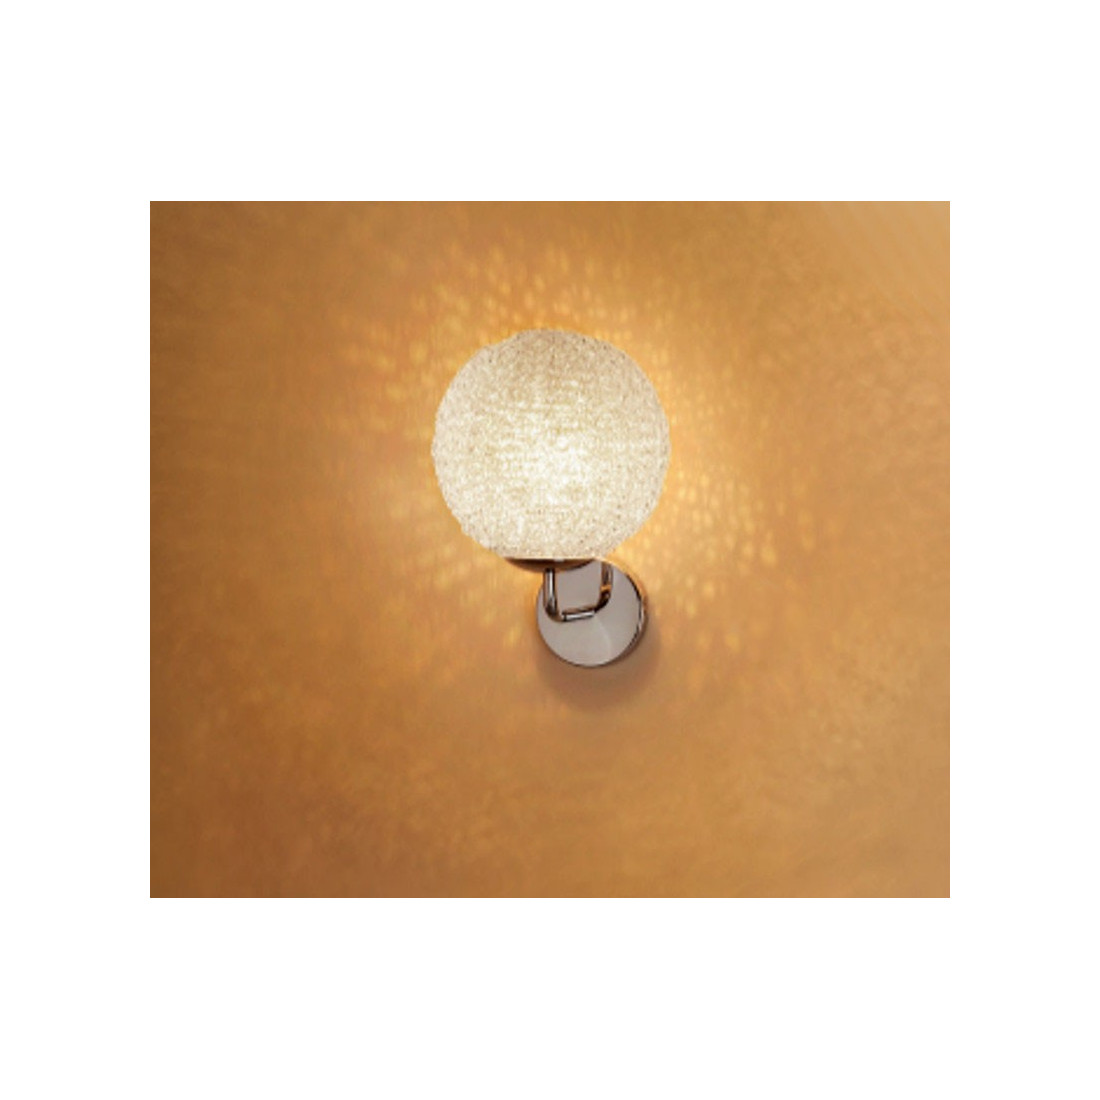 Applique pl blub pl15020 20cm sfera lampada parete for Applique da interno